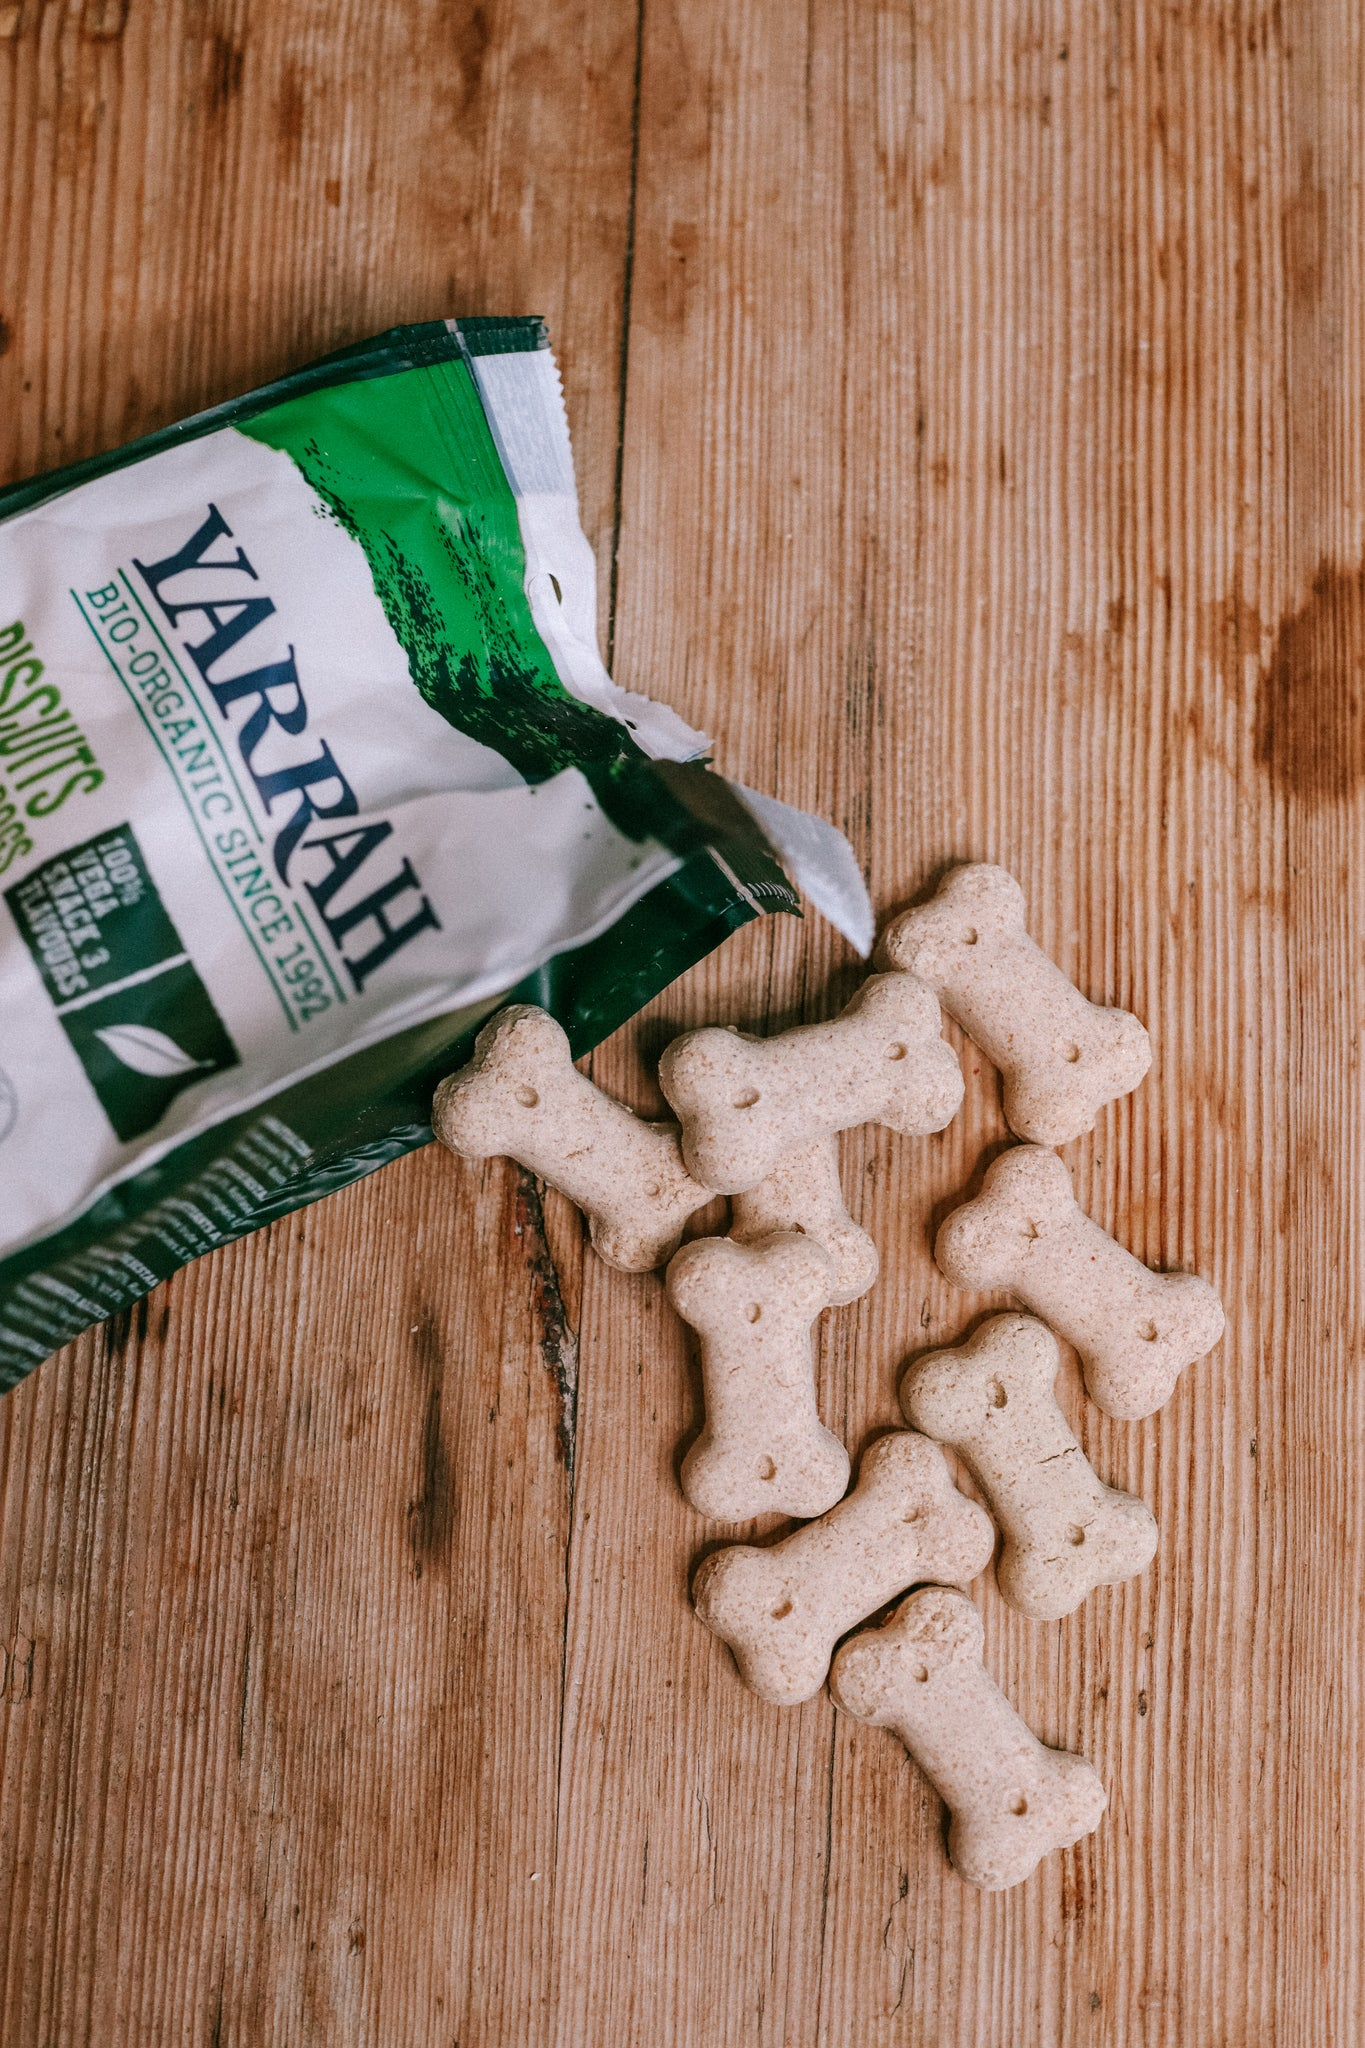 Vegan & Organic Small Dog Biscuit, Yarrah